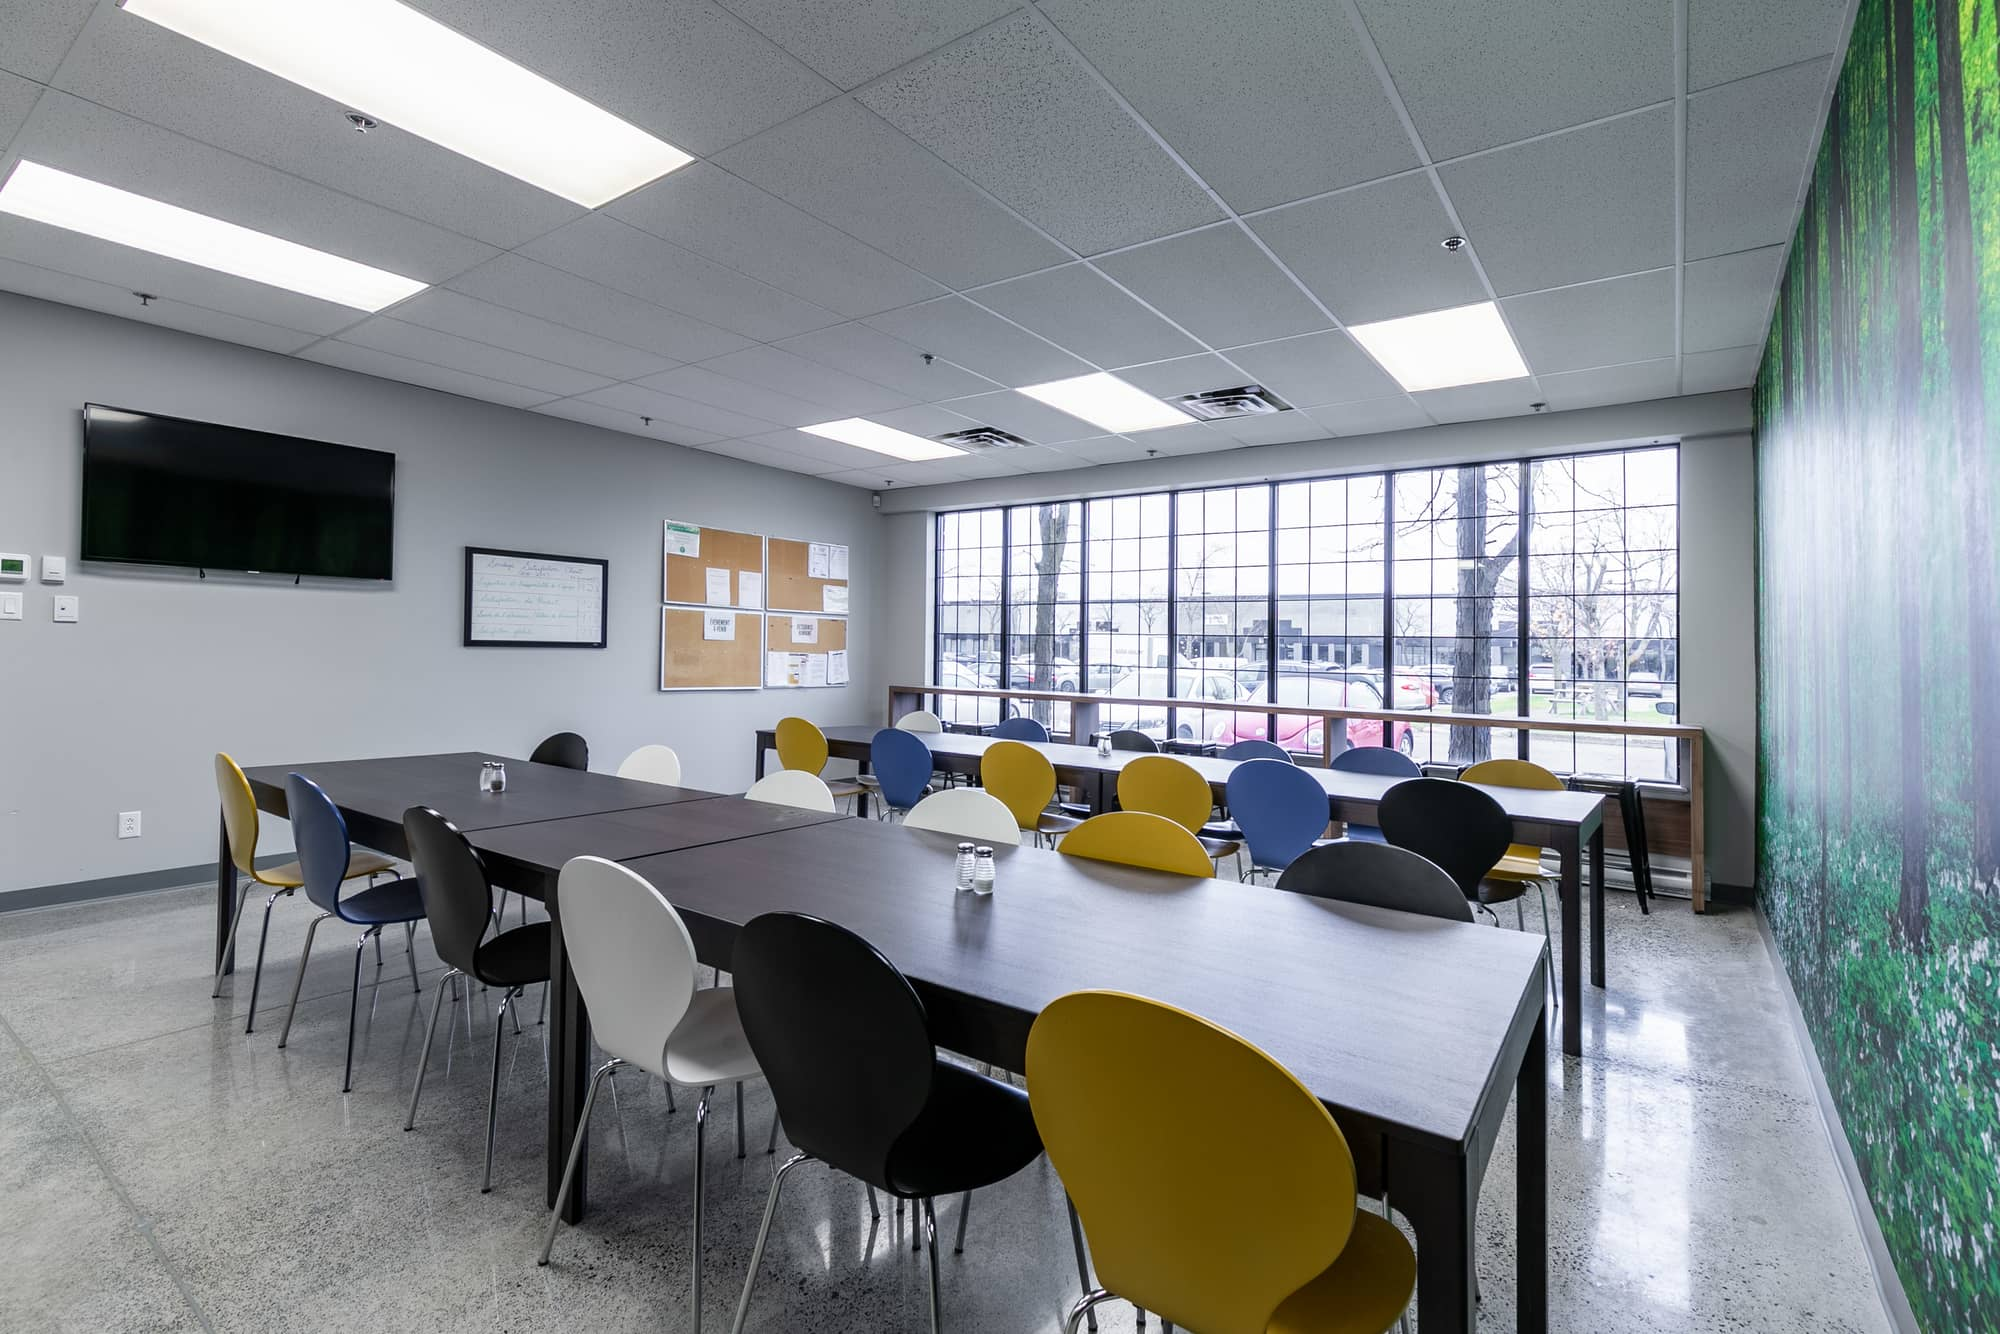 breakroom tables with colorful chairs and big windows